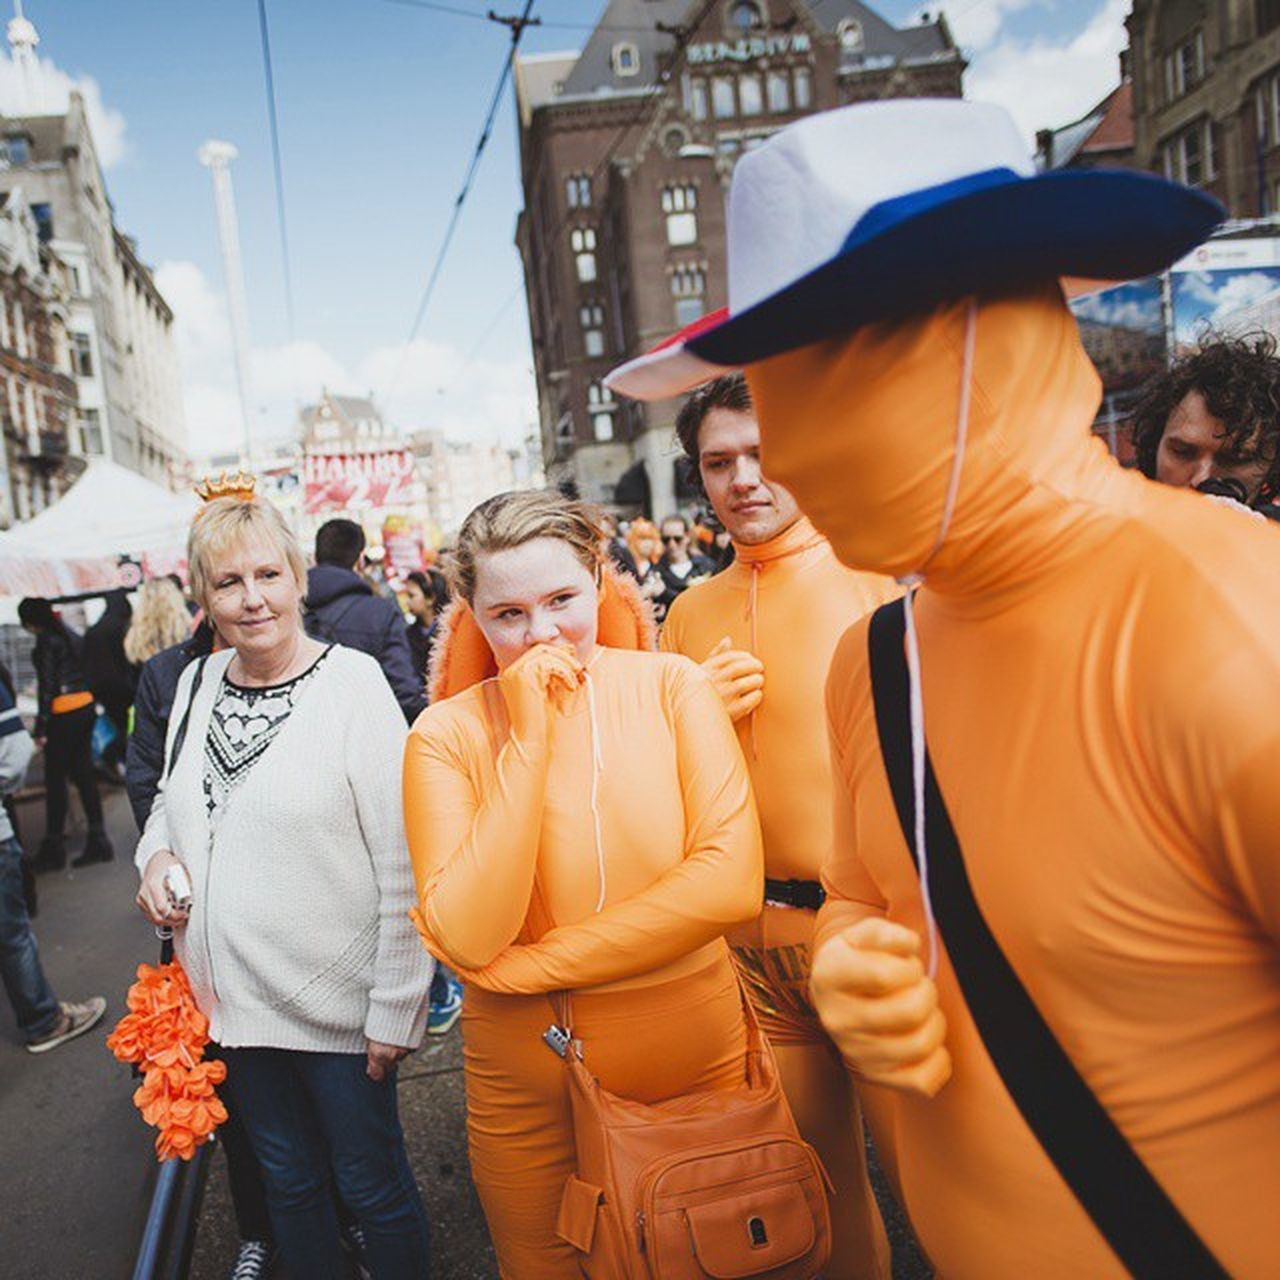 27th of April 2015. King's Day in Amsterdam, The Netherlands. Koningsdag Koningsdag2015 Amsterdam Netherlands